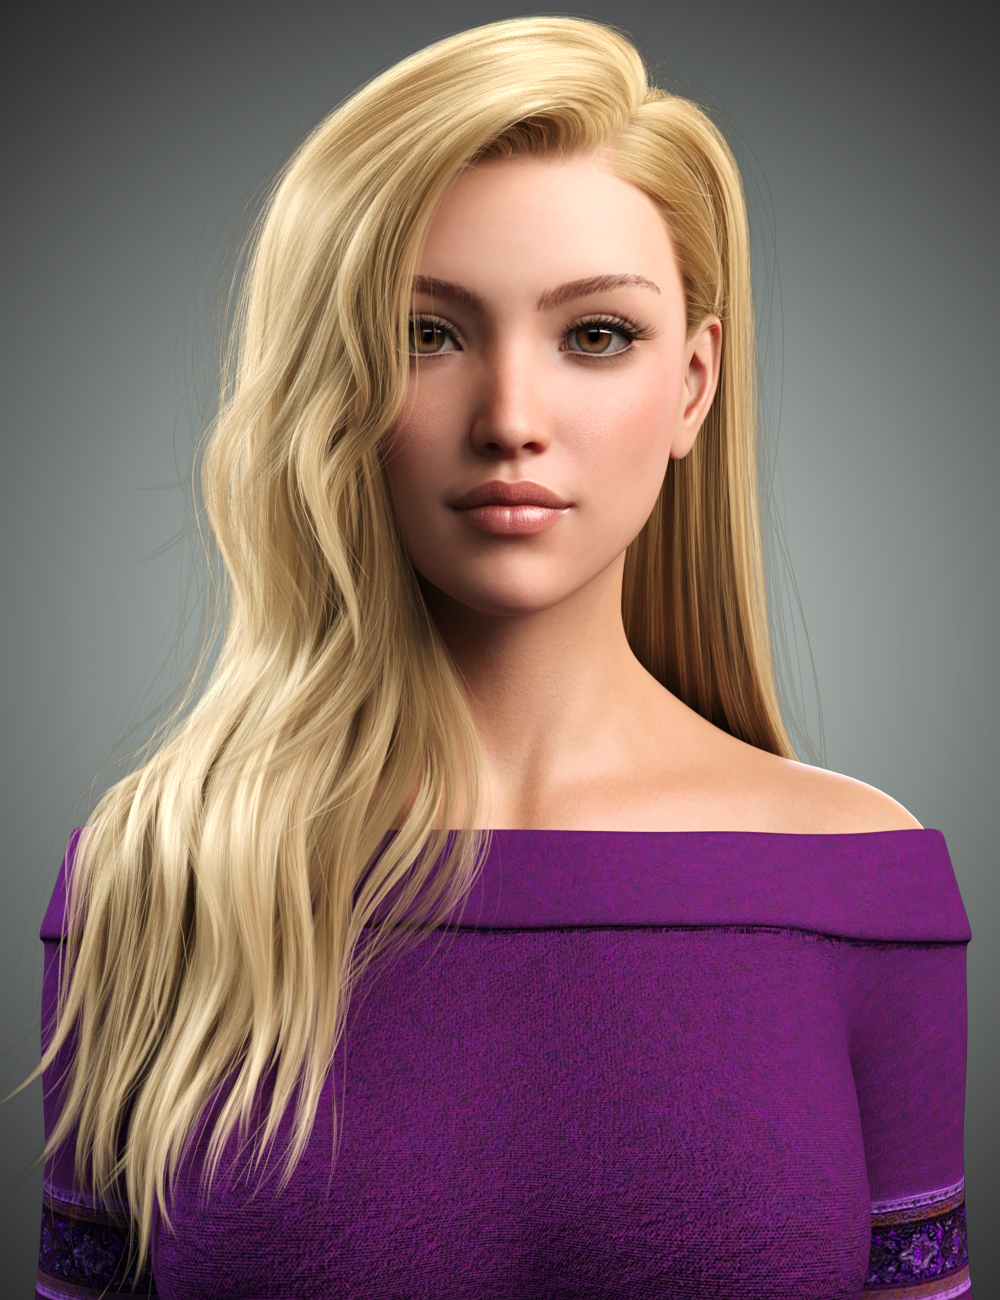 Monica Hair For Genesis 8 Female(s) by: WindField, 3D Models by Daz 3D